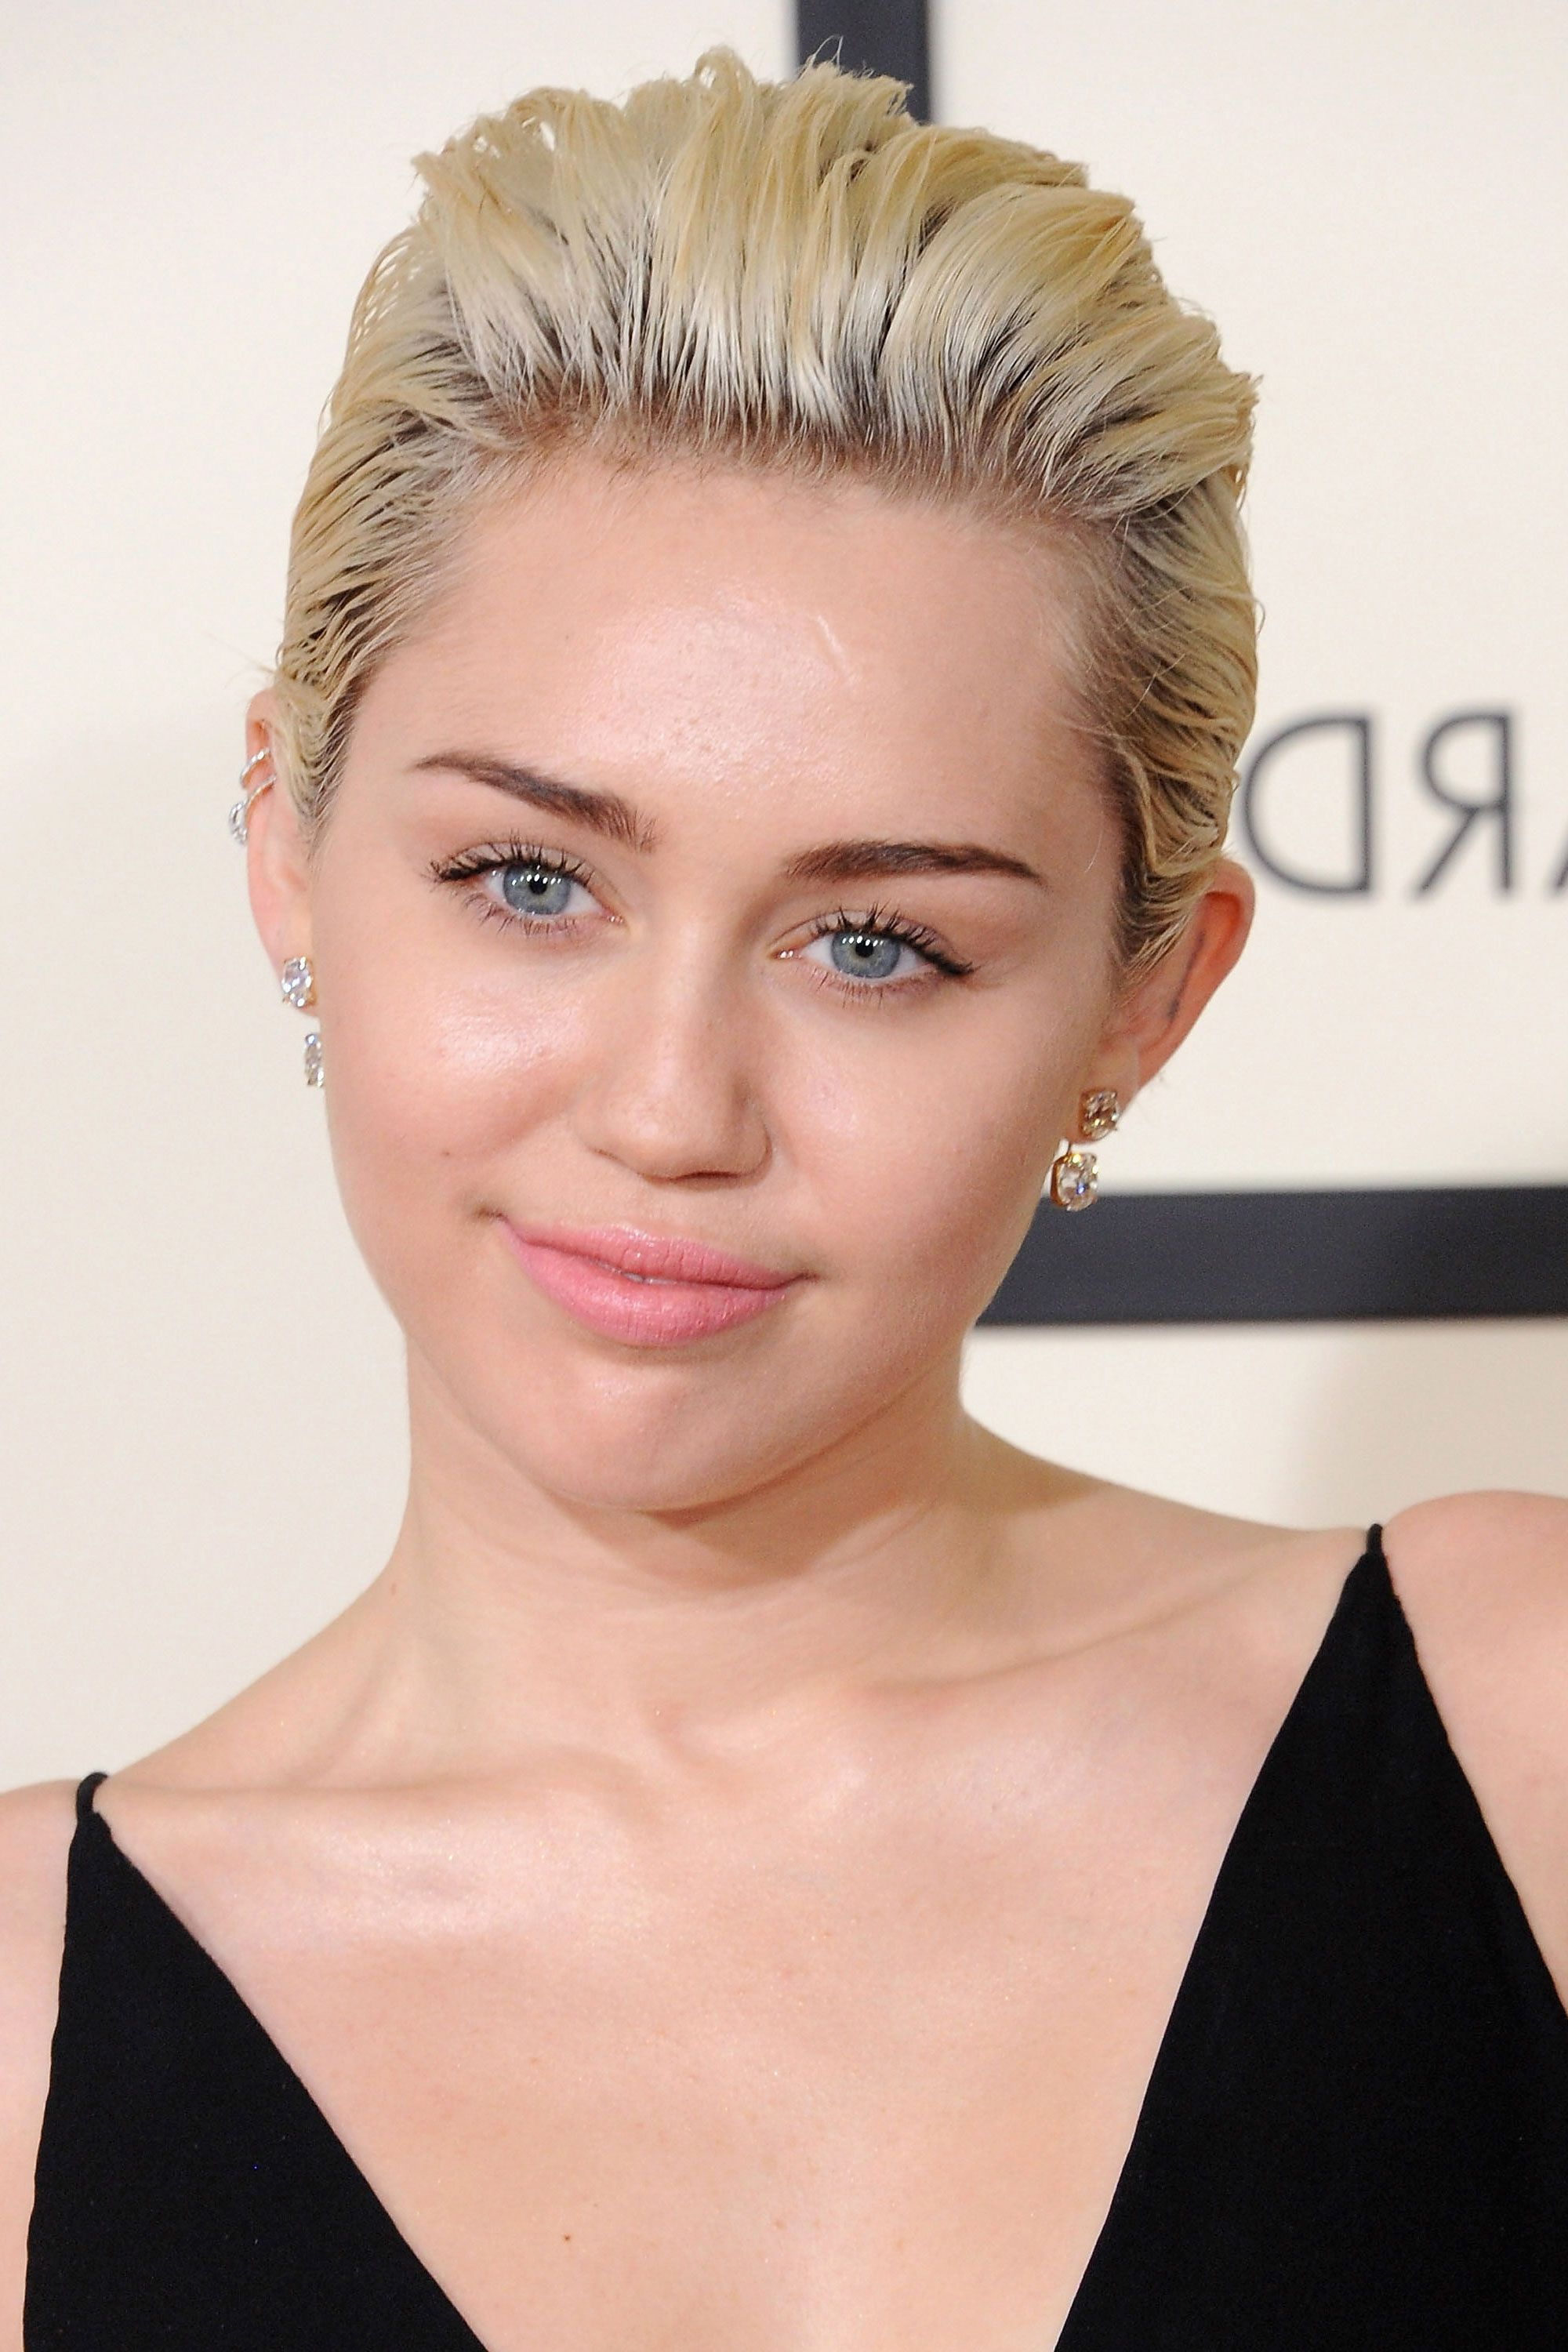 87 Cute Short Hairstyles & Haircuts - How To Style Short Hair in Dinner Short Hairstyles